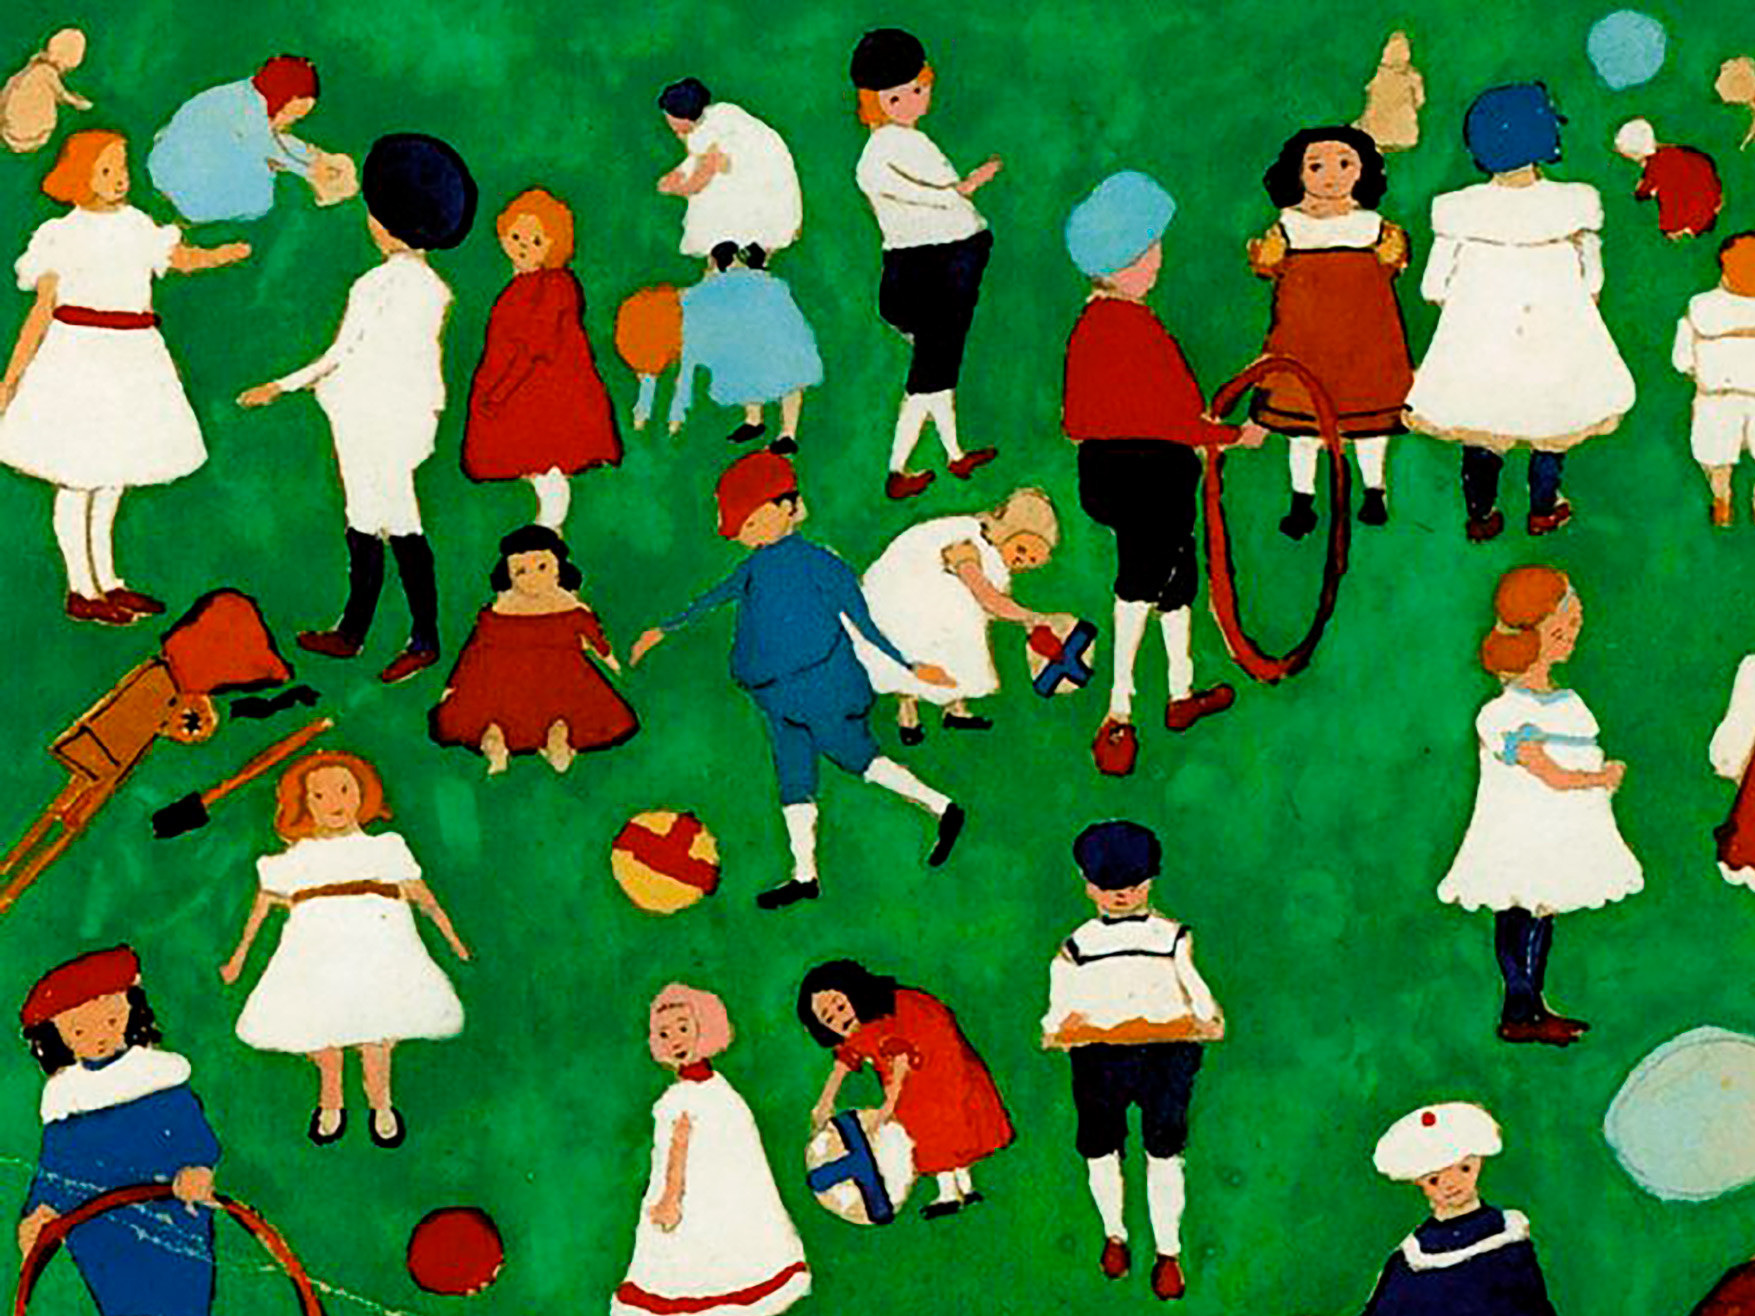 Kazimir Malevich, Children on the Grass, 1908 (Pushkin Museum State Museum of Fine Arts, Moscow).